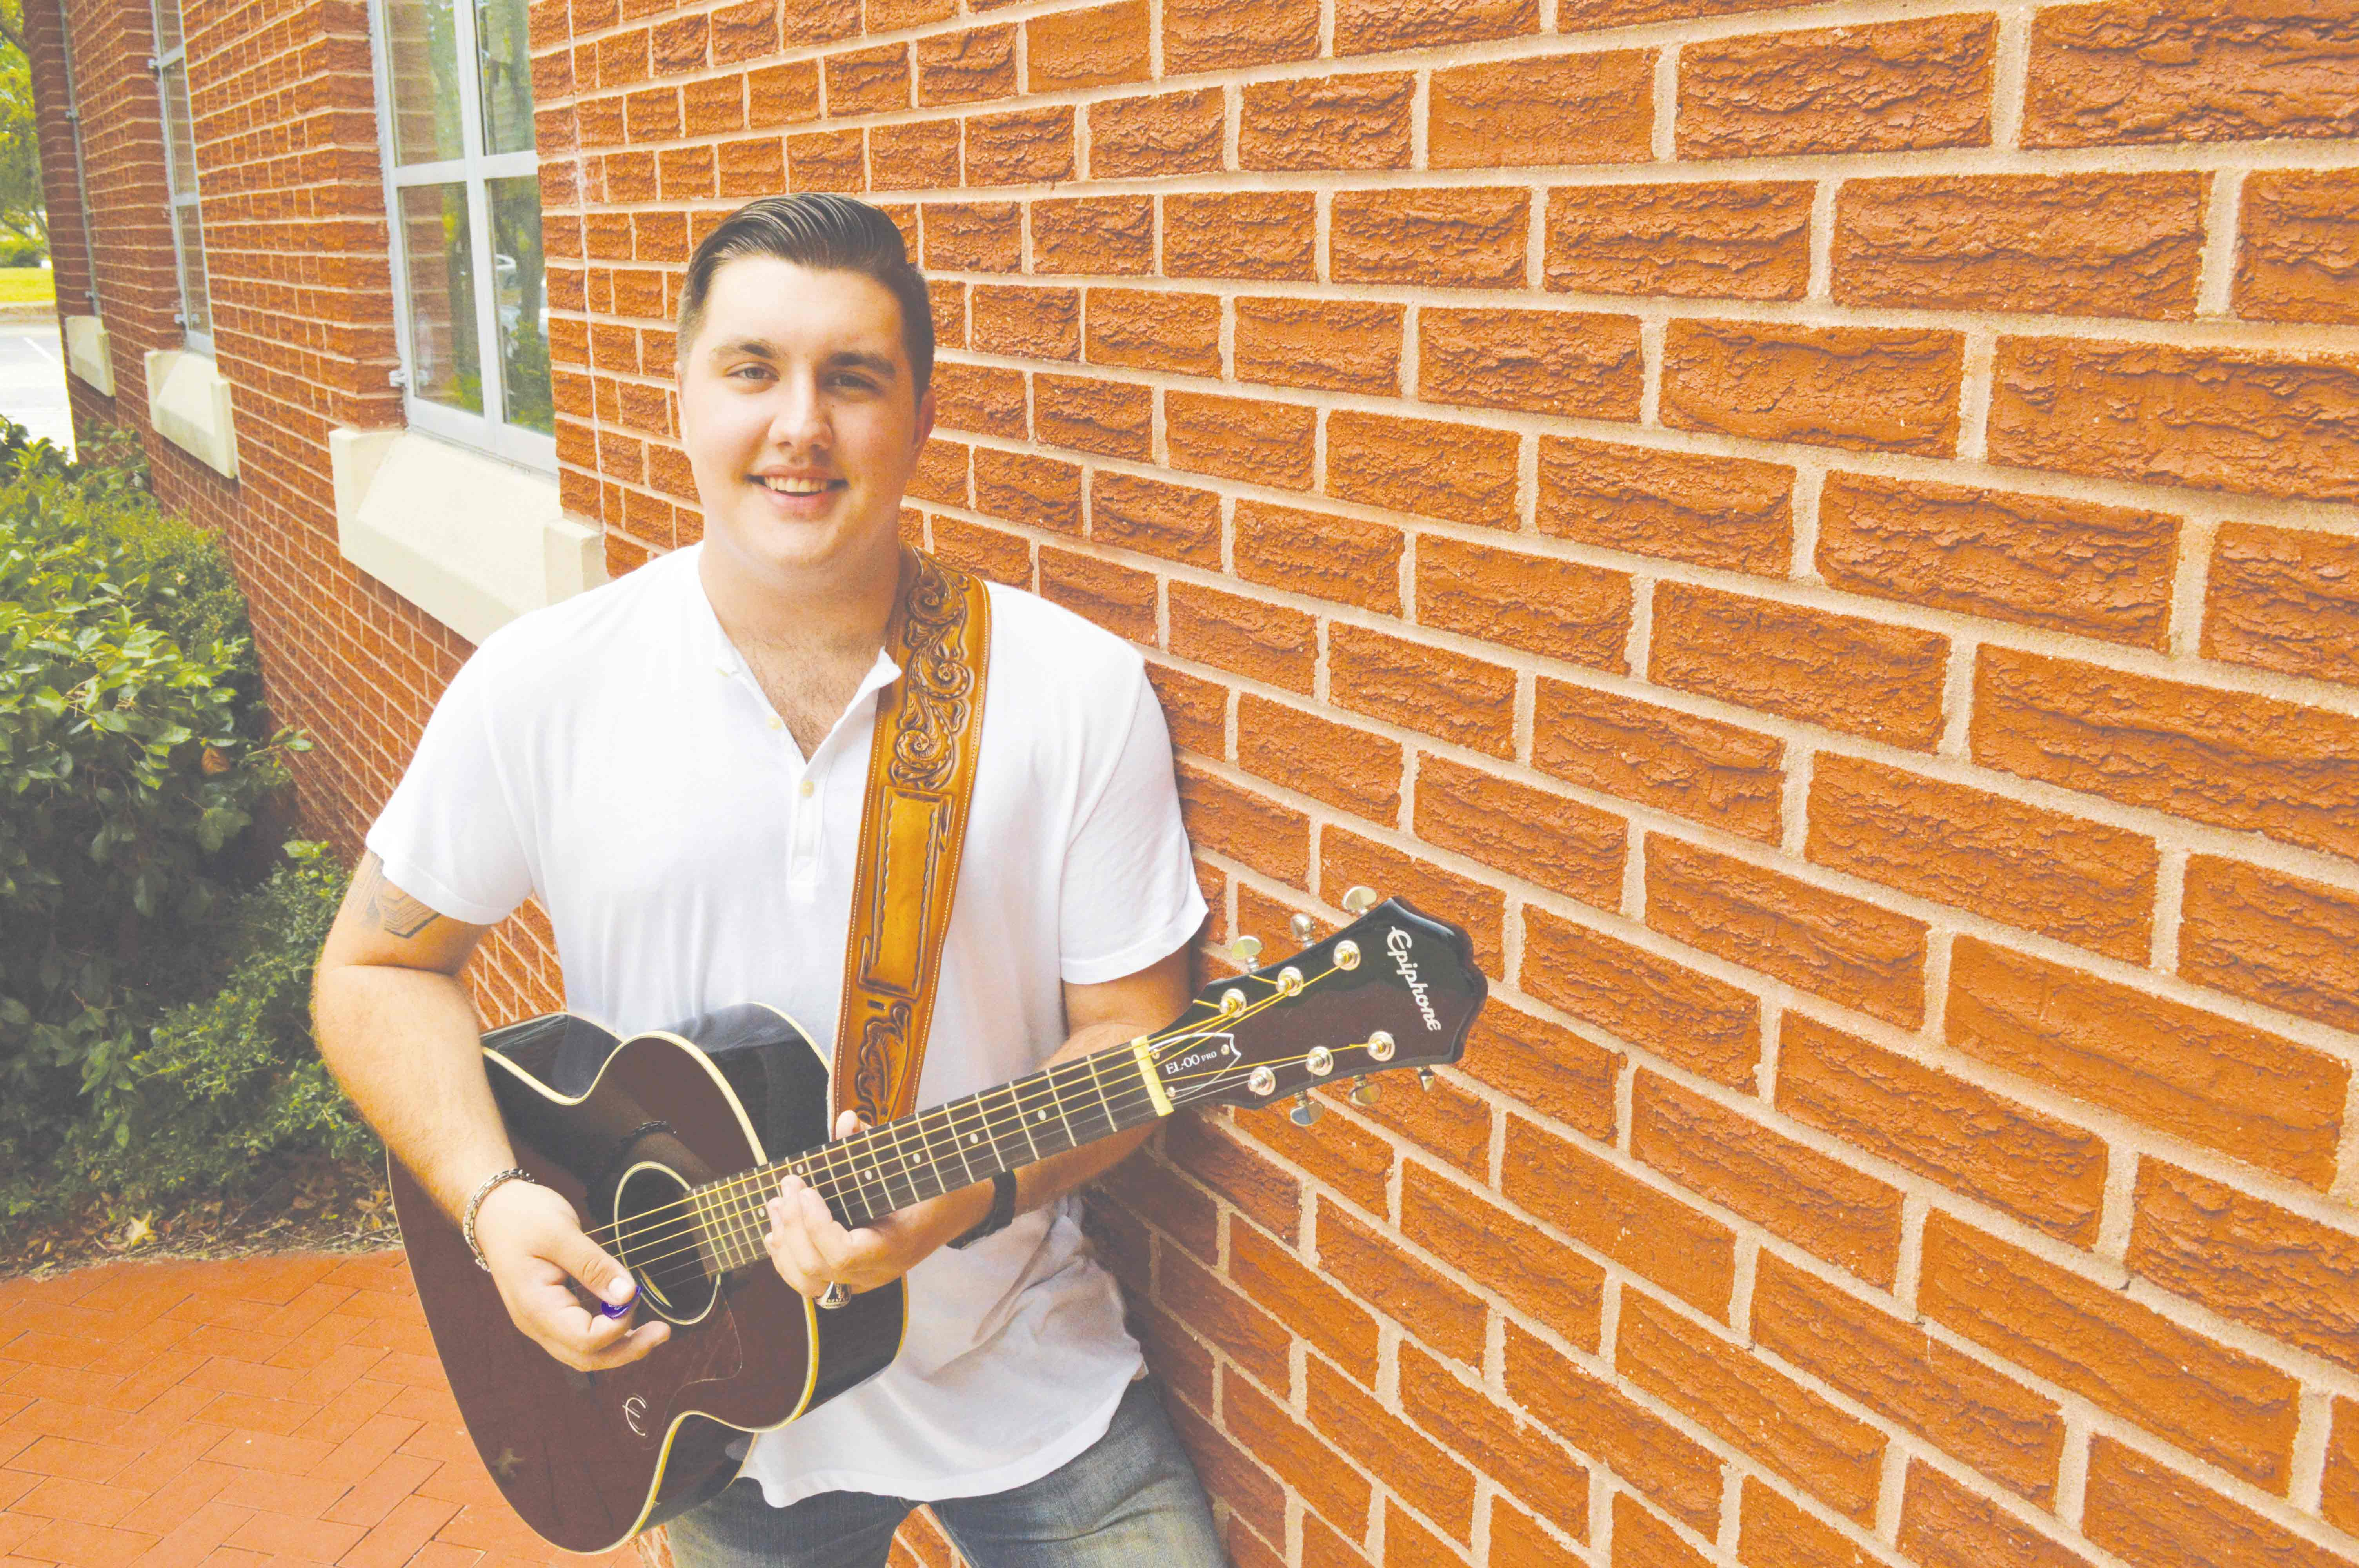 Jarret Forrester began pursuing his passion for music at 9 years old, and now he produces and writes his own music.